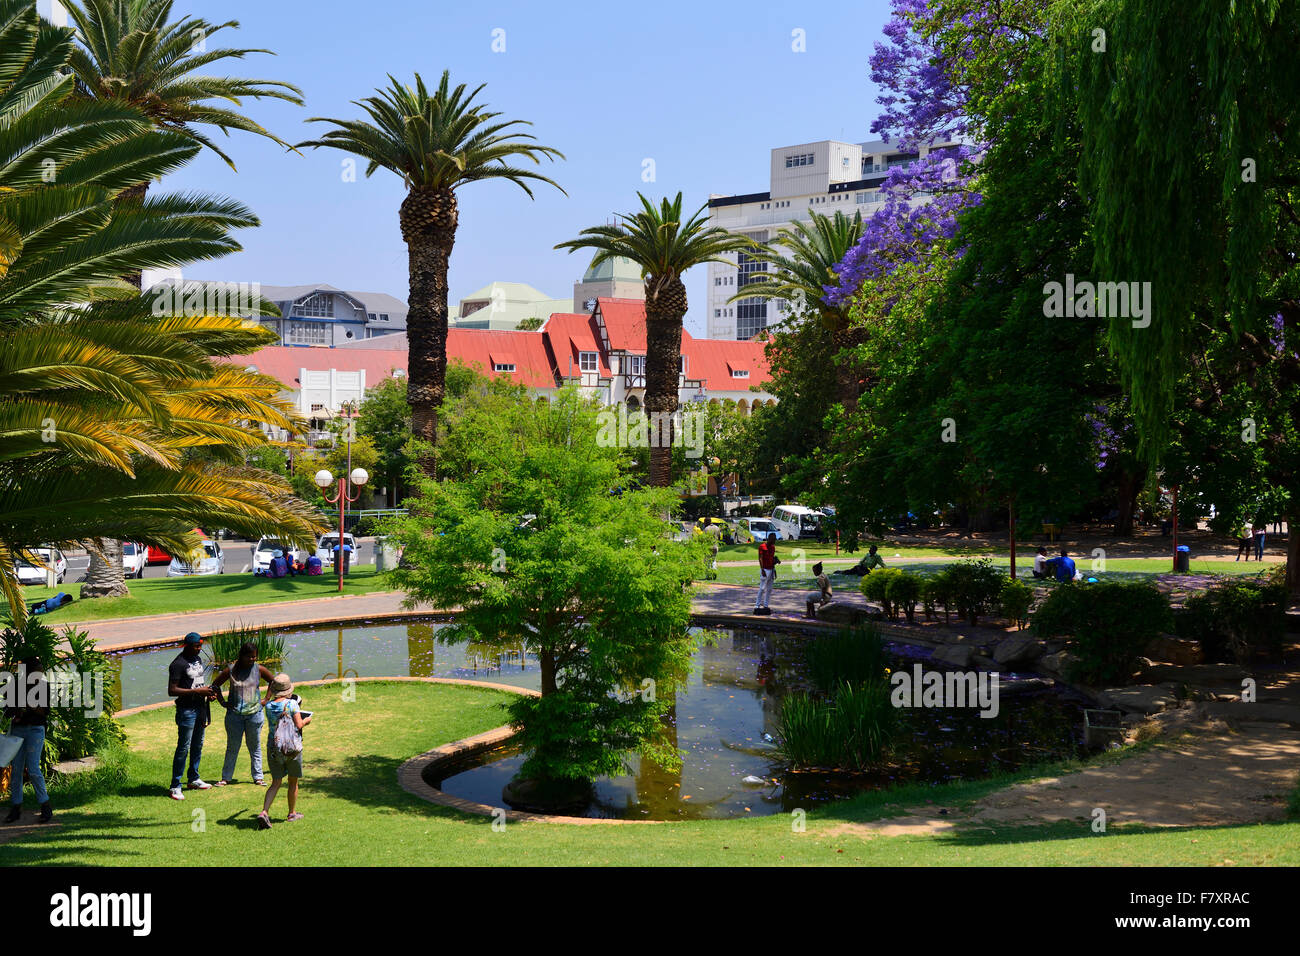 Zoo Park in downtown Windhoek, Namibia - Stock Image